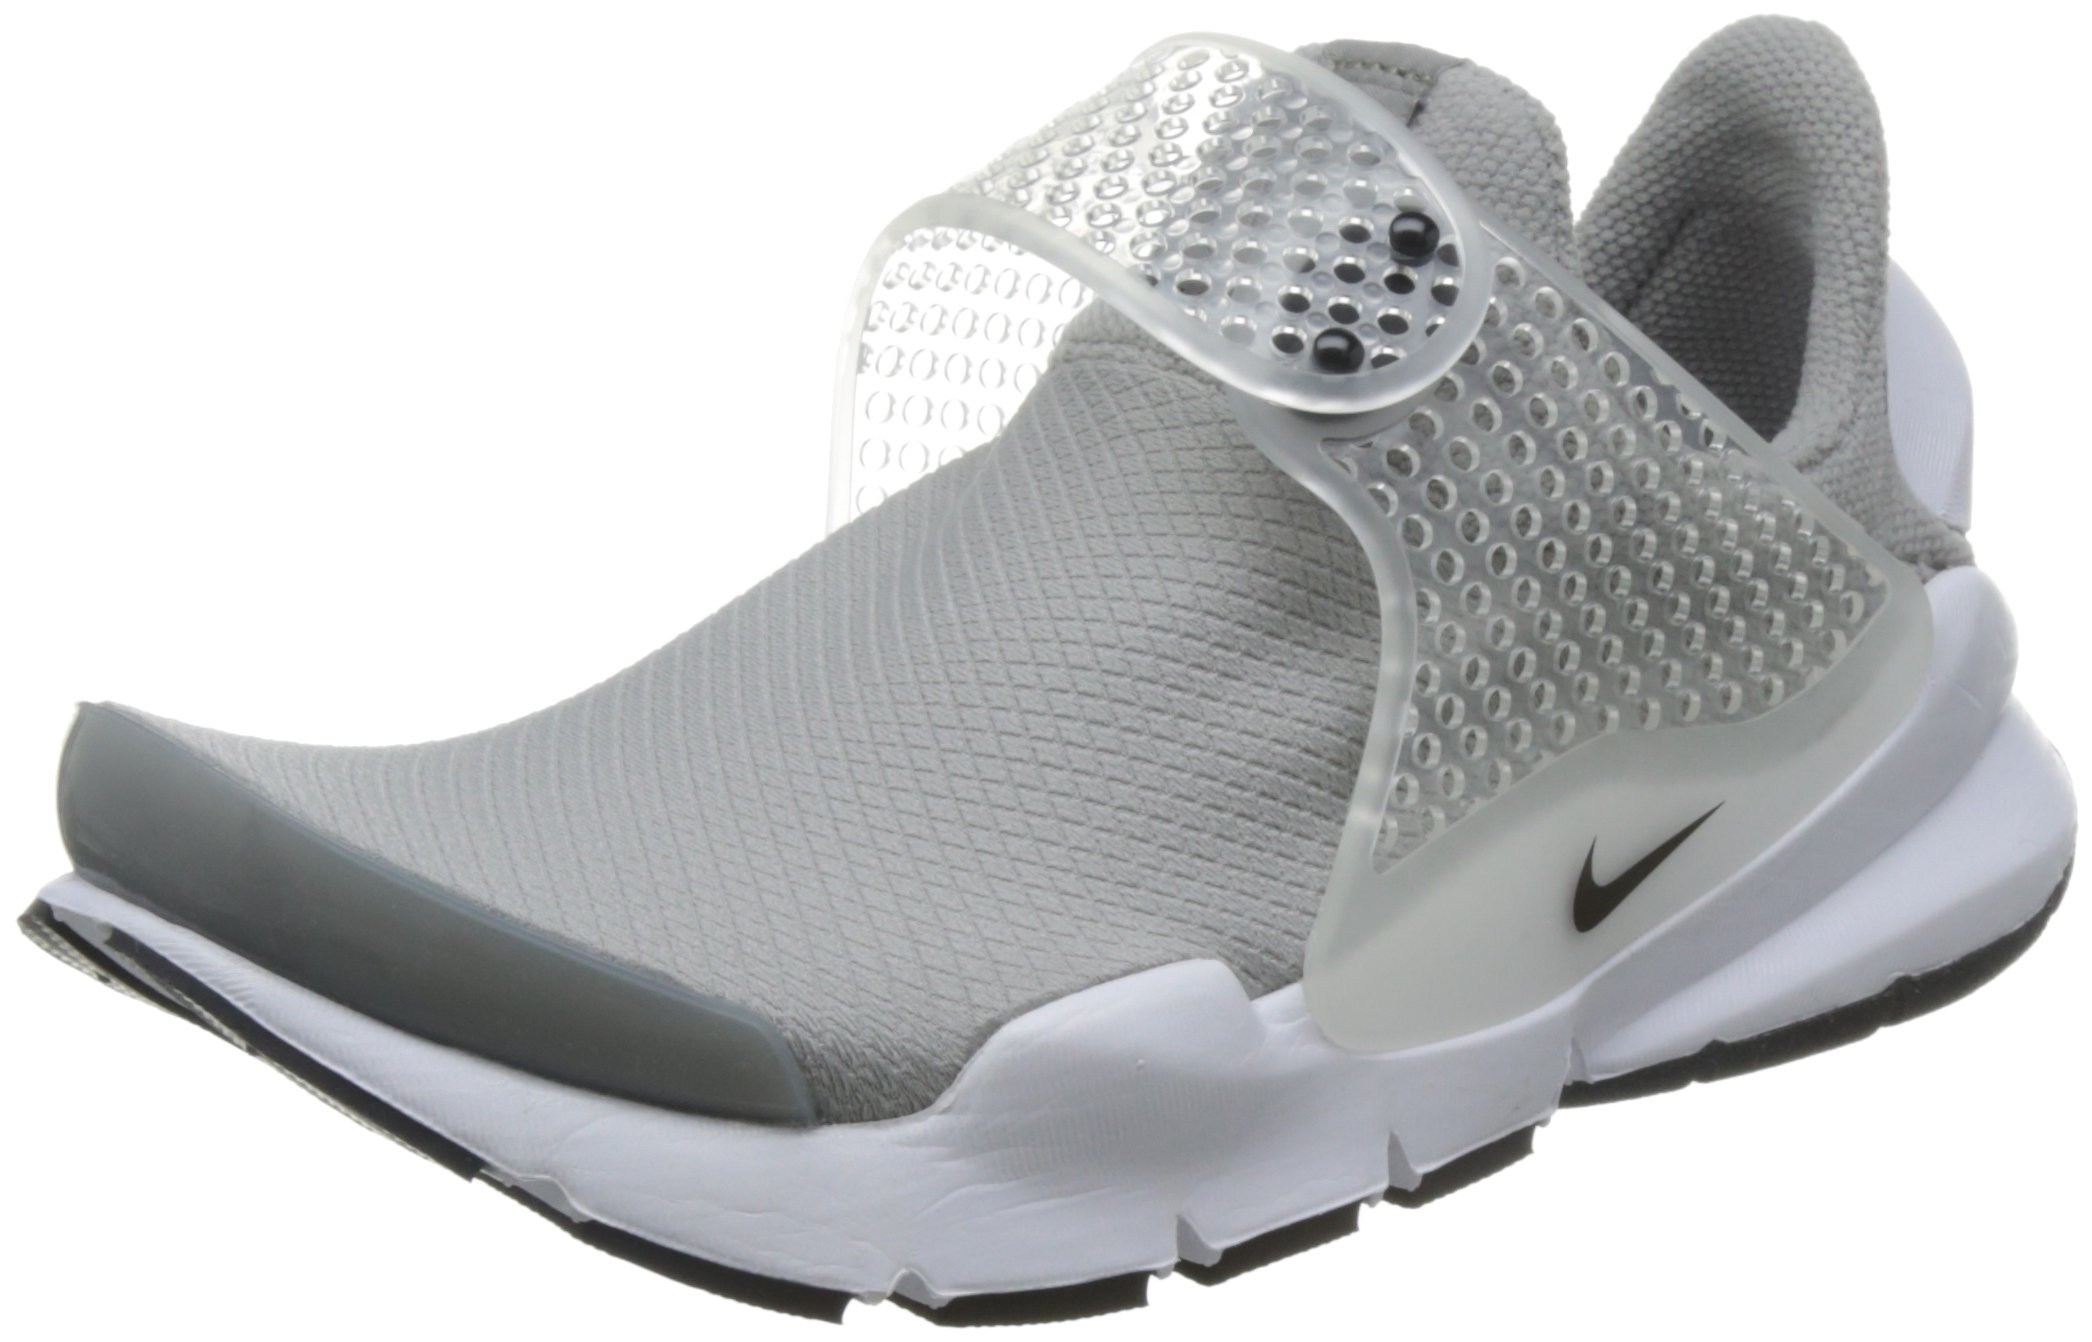 Nike Womens Sock Dart Running Trainers 848475 Sneakers Shoes (US 8 medium grey black white 001)